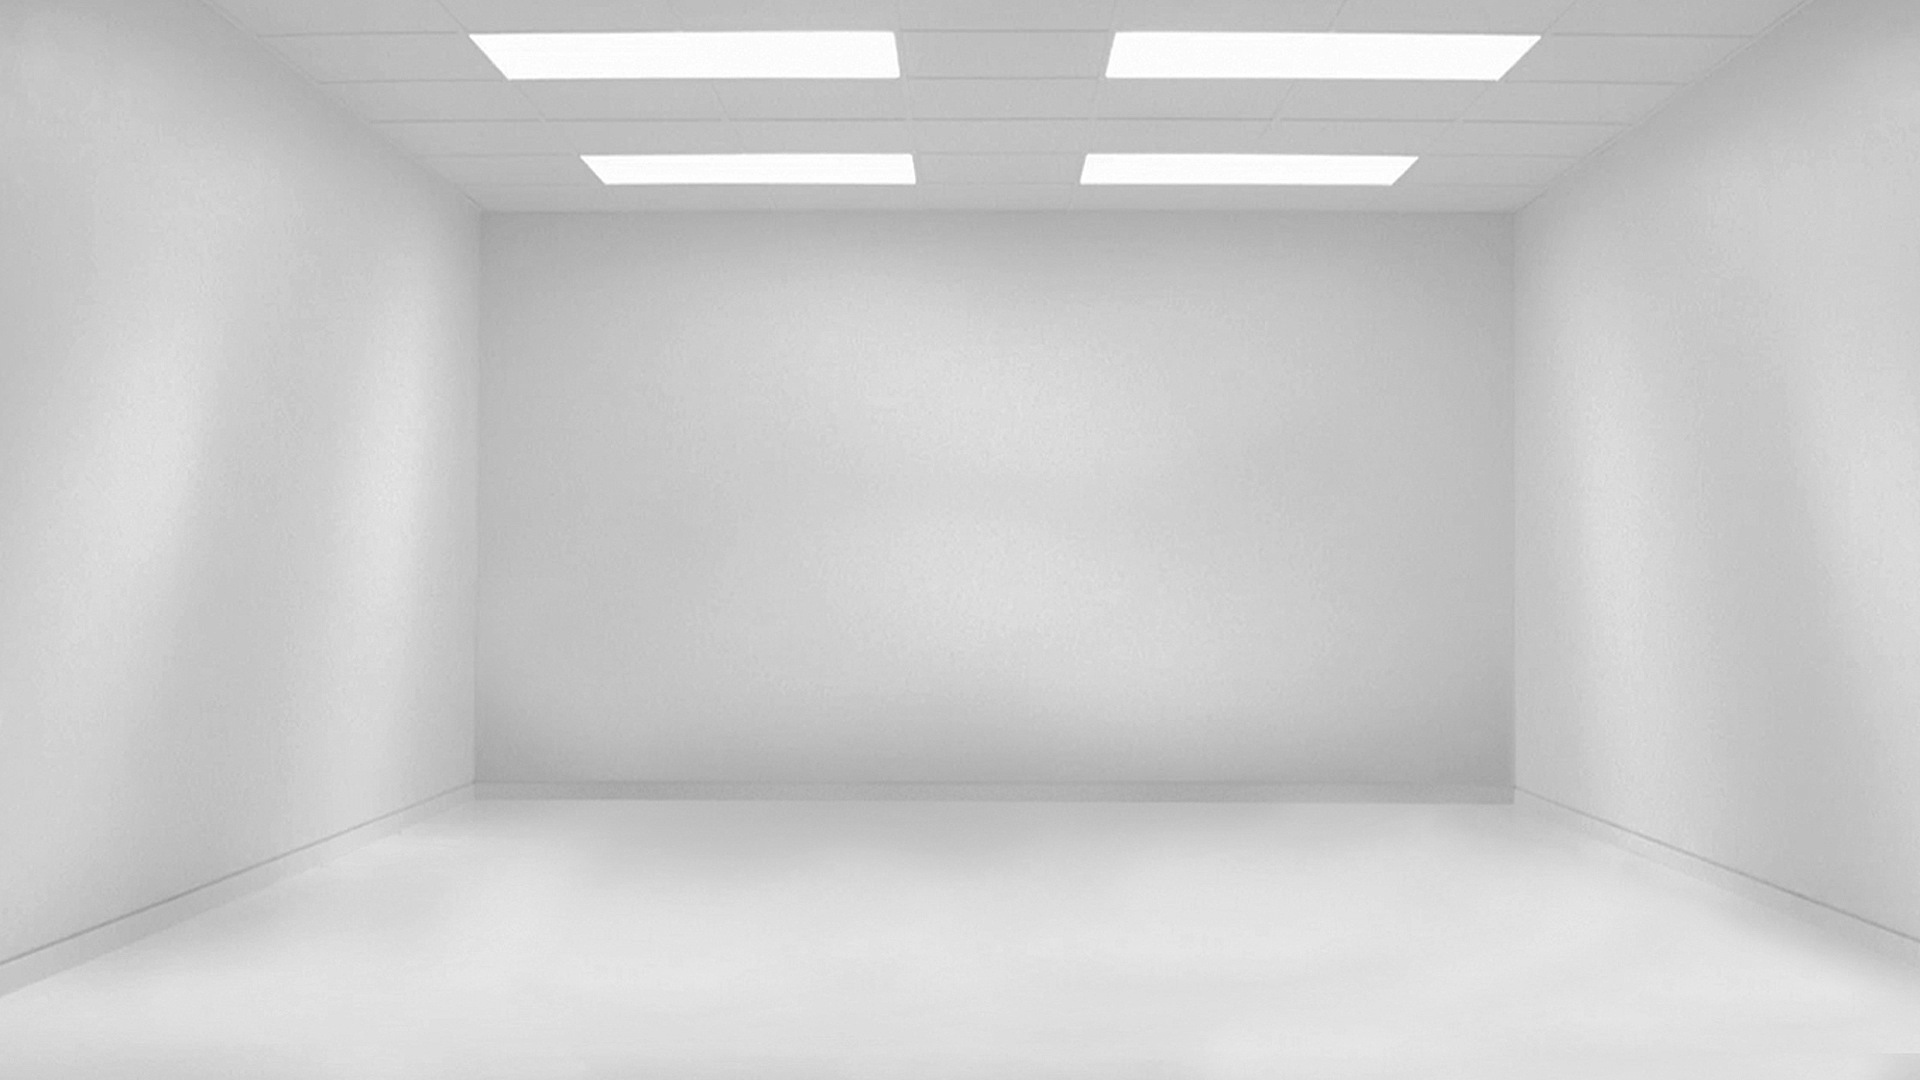 All White Room 20 best background images on pinterest | empty room, 10 essentials